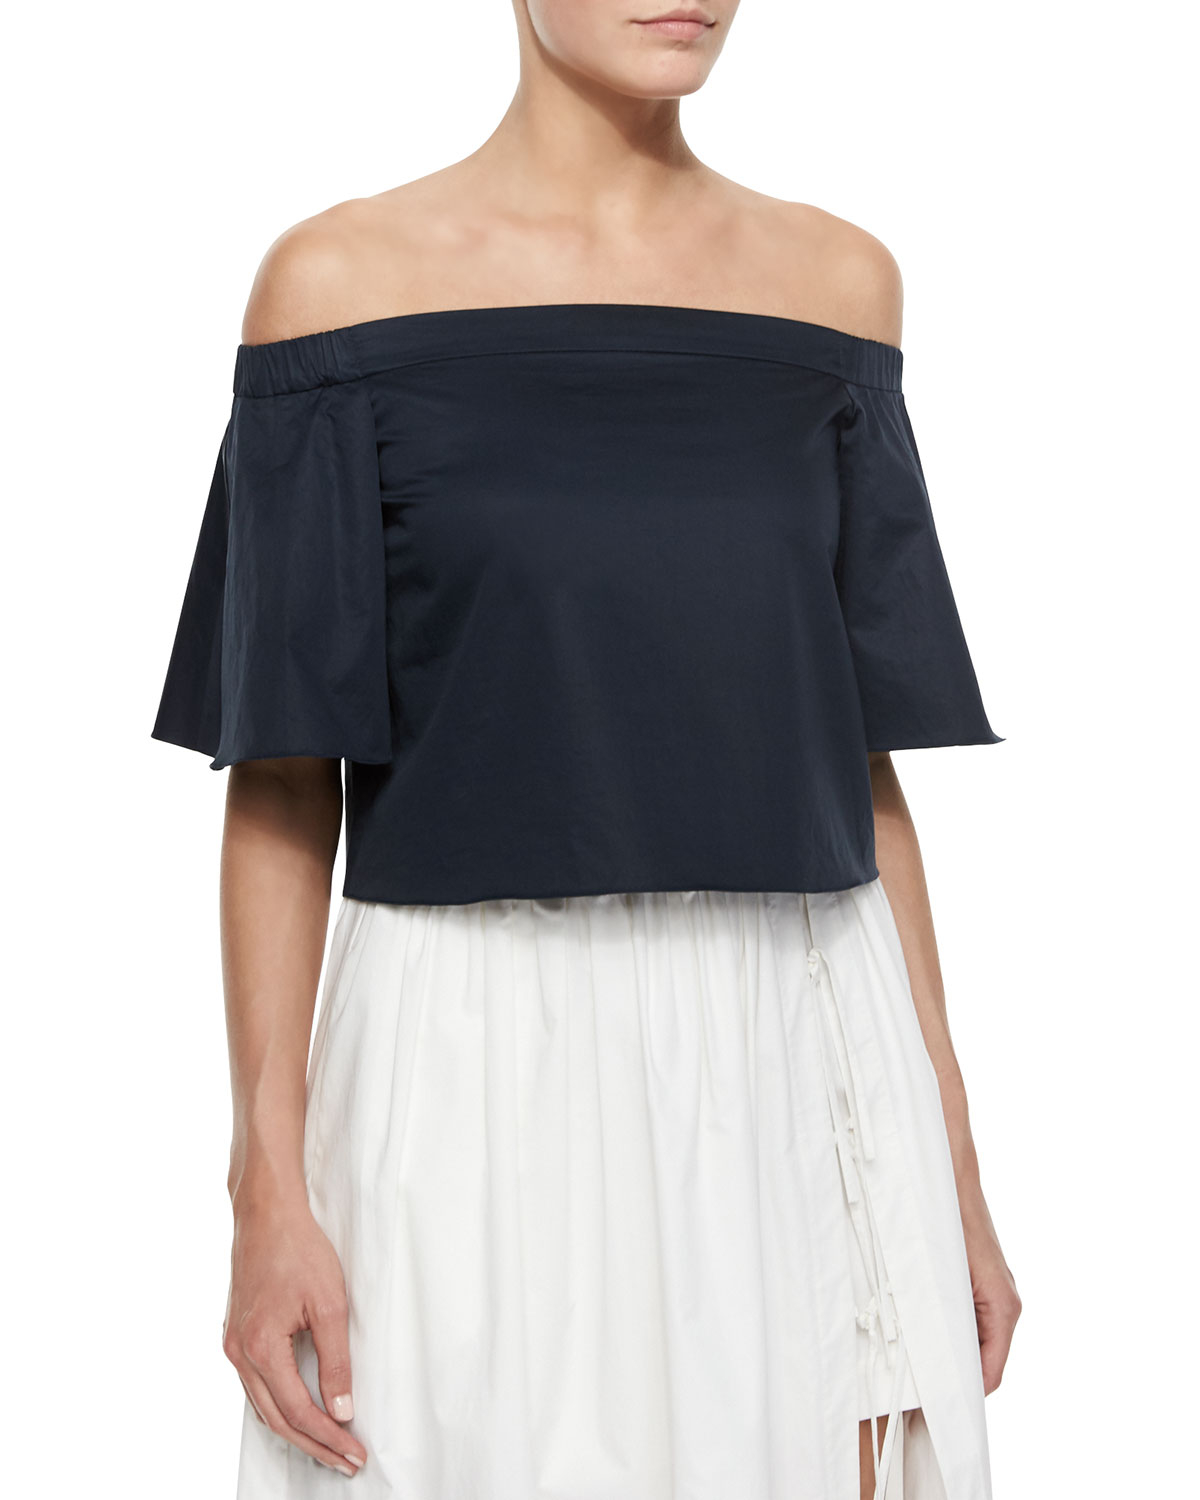 4d2cc6f8dc2736 Lyst - Tibi Satin Off-the-shoulder Top in Black